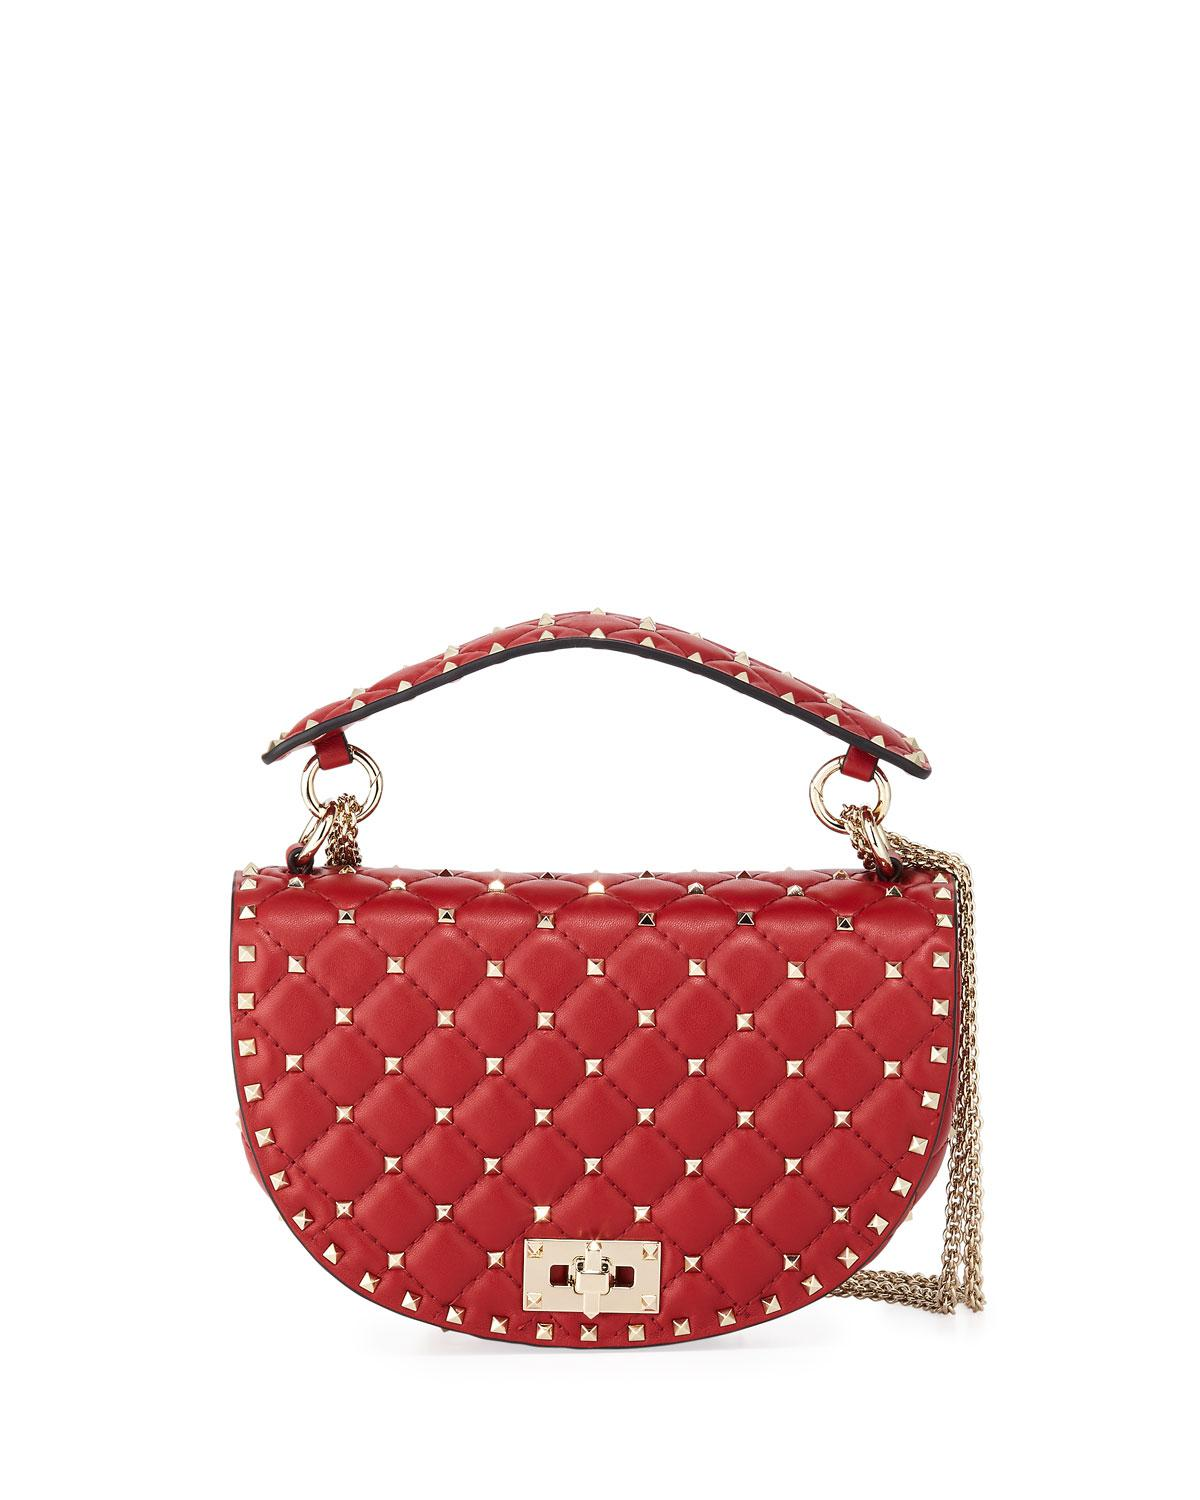 092941123053 Lyst - Valentino Rockstud Spike Napa Leather Saddle Bag in Red